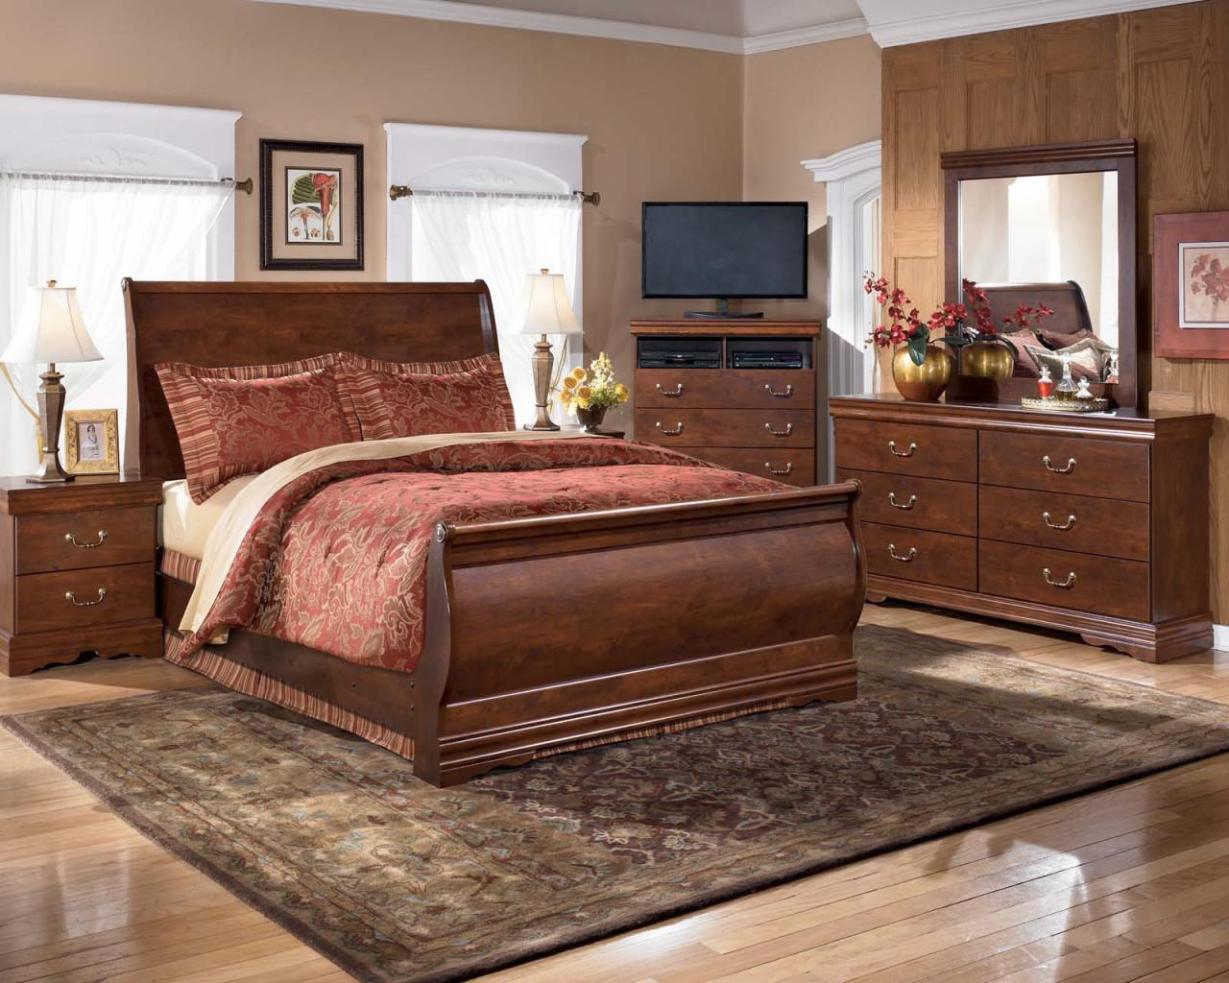 Image of: King Sleigh Bed